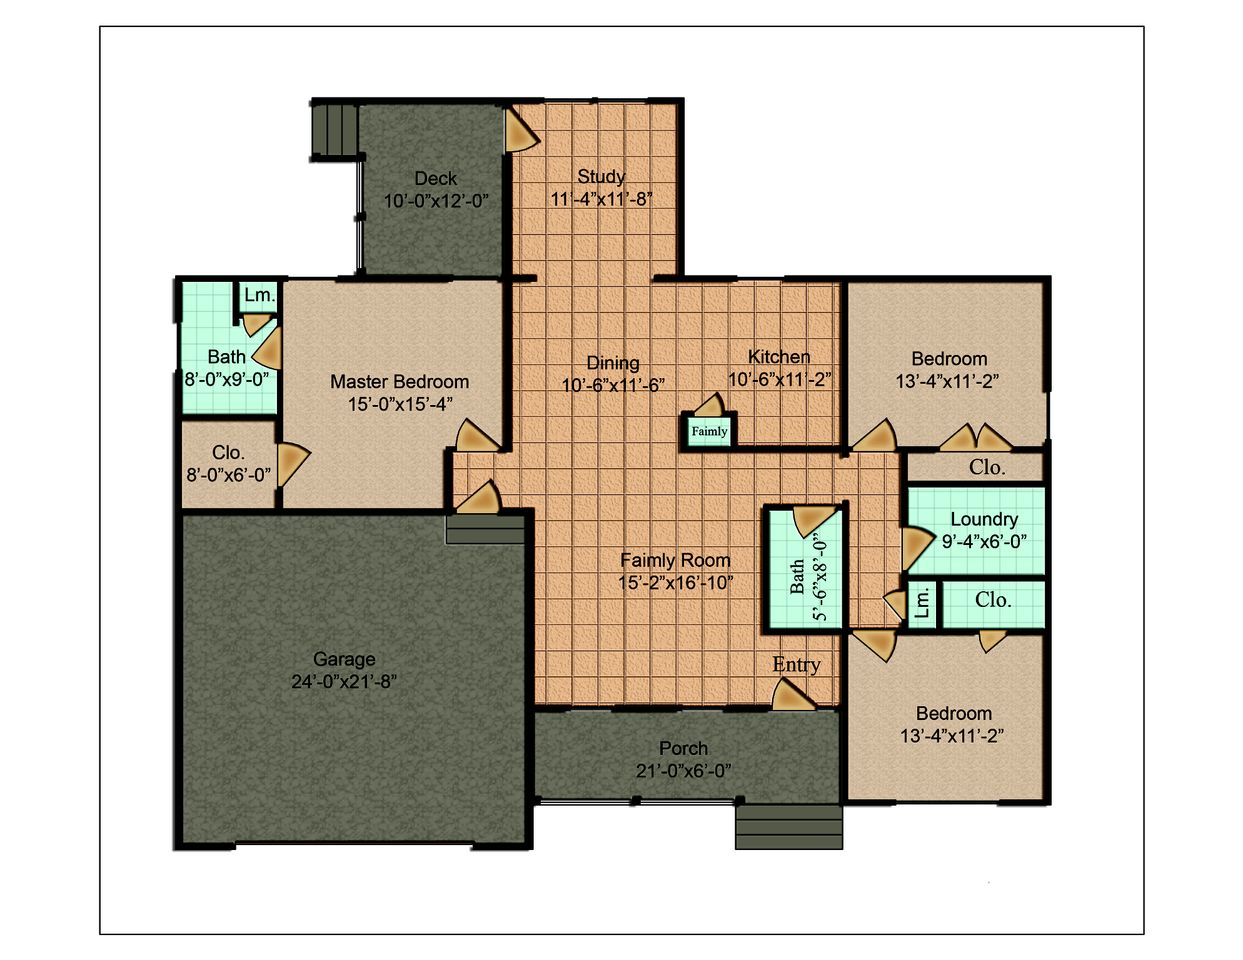 View available floor plans renderings Rendering floor plans